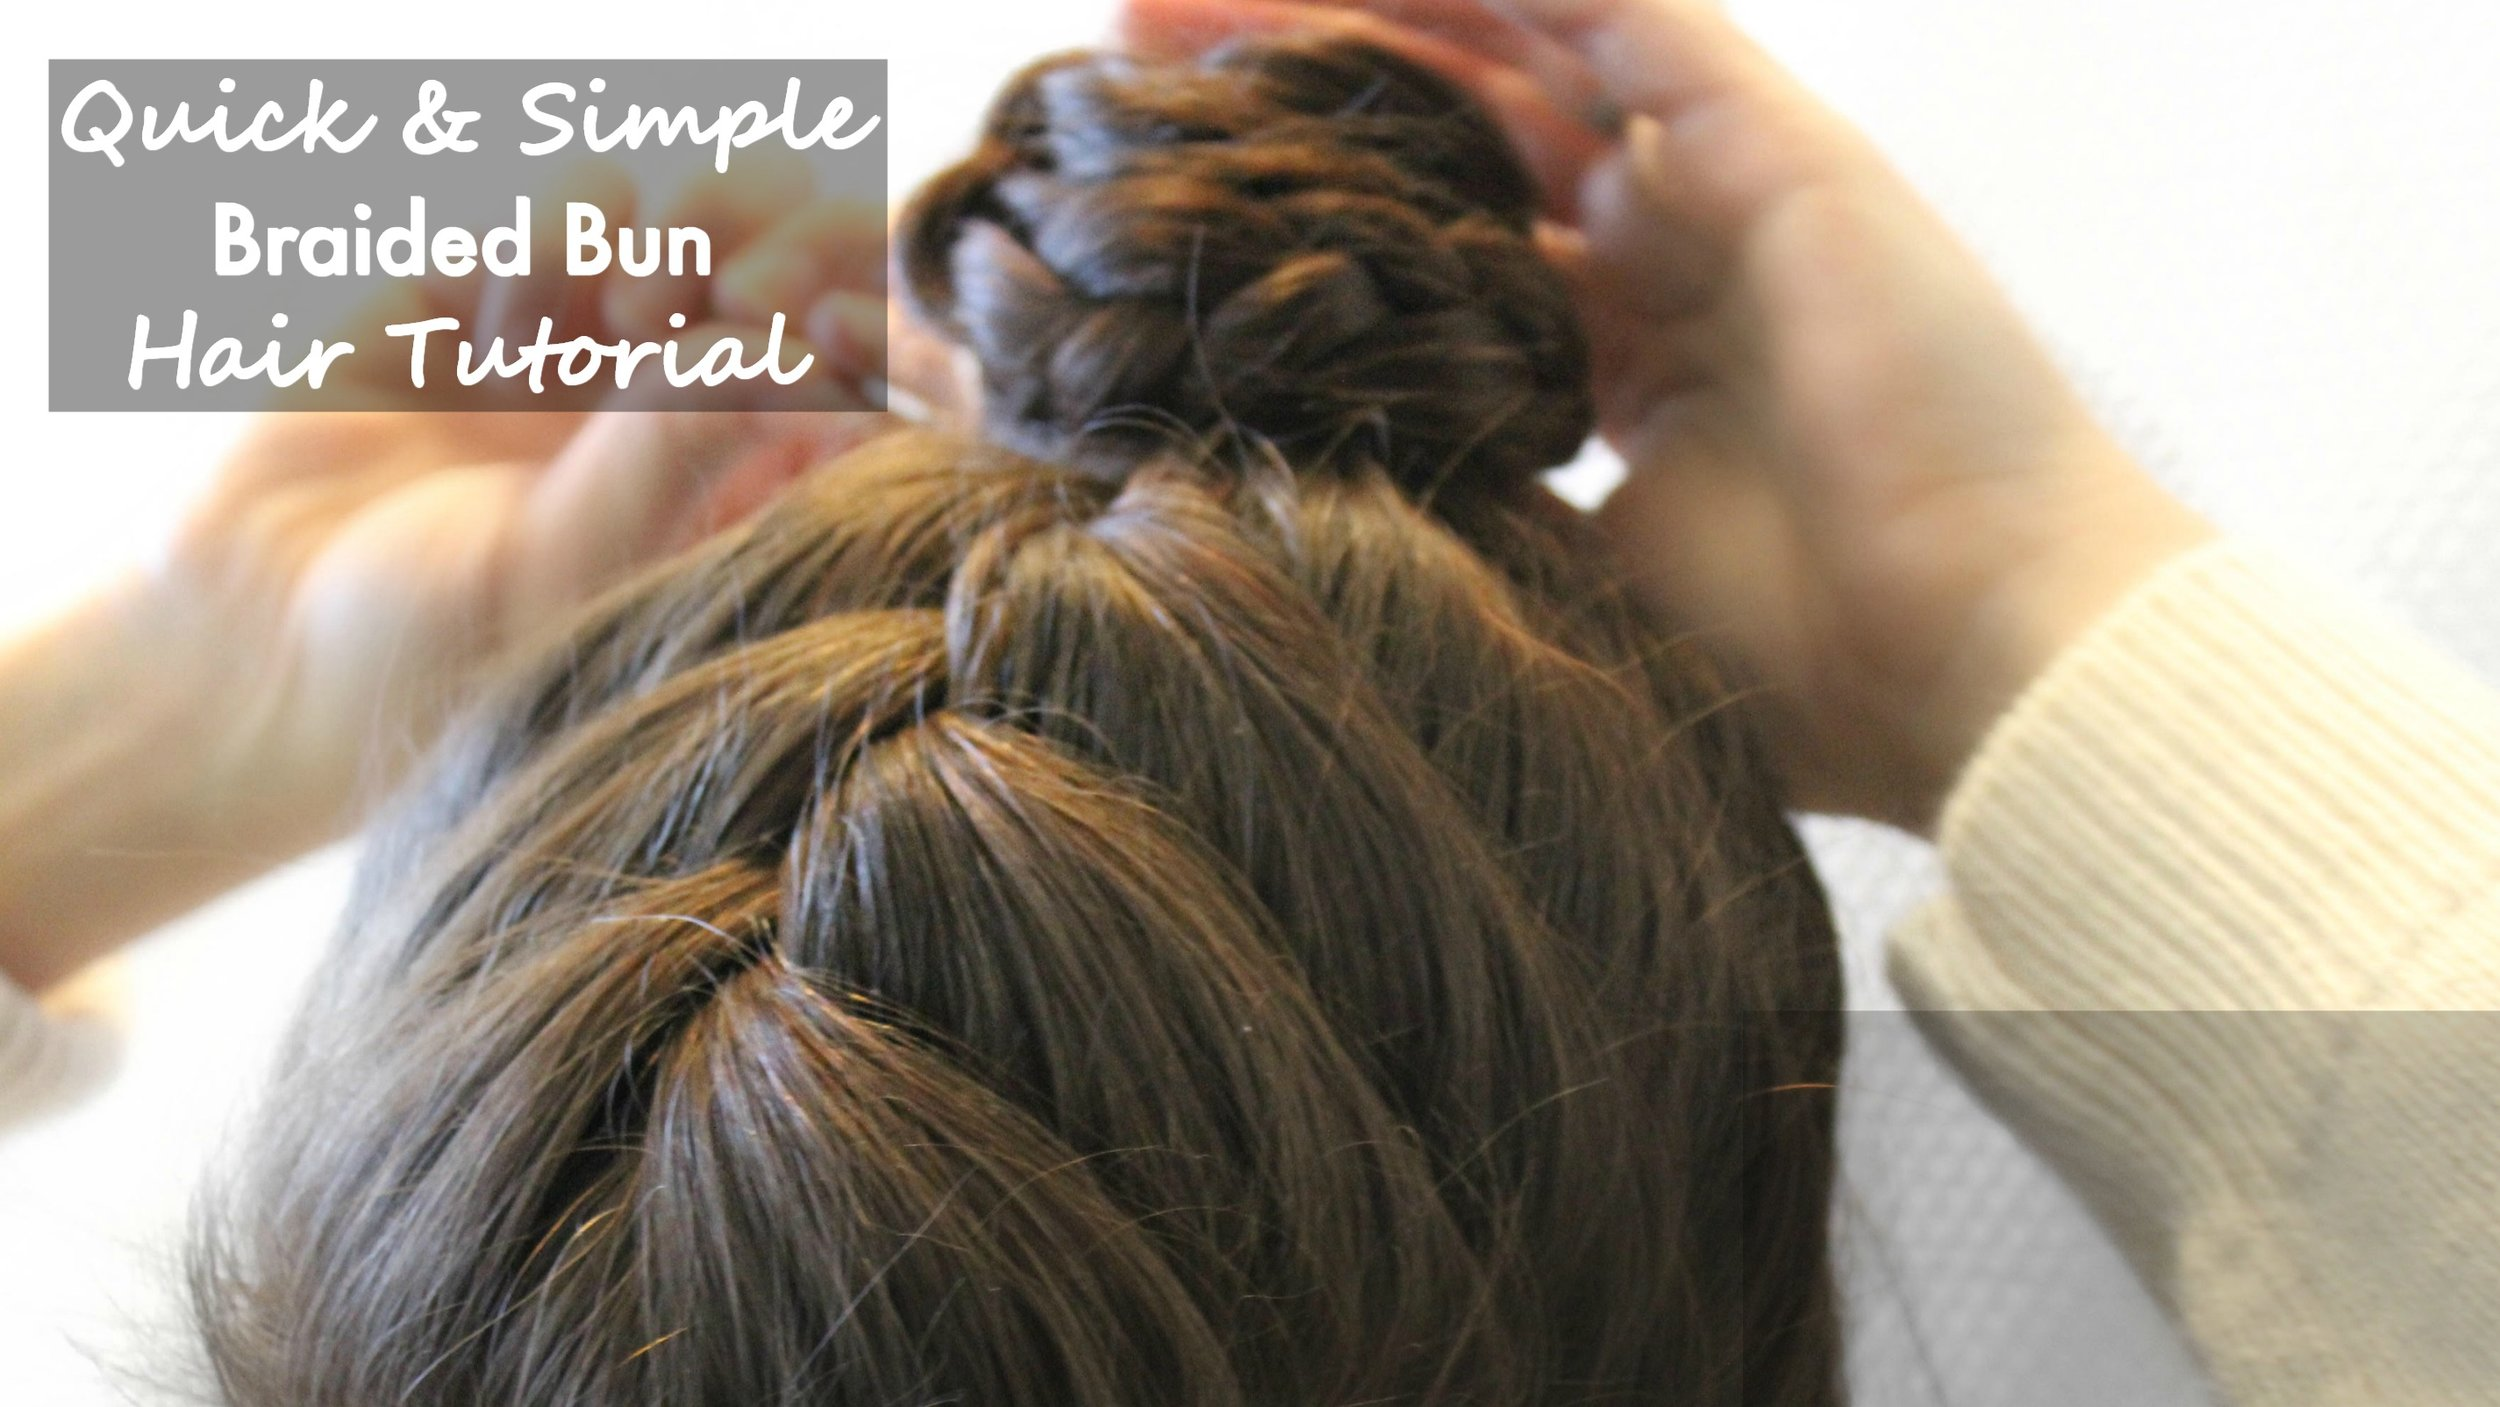 braid-to-bun-hair-tutorial-main-photo.jpg